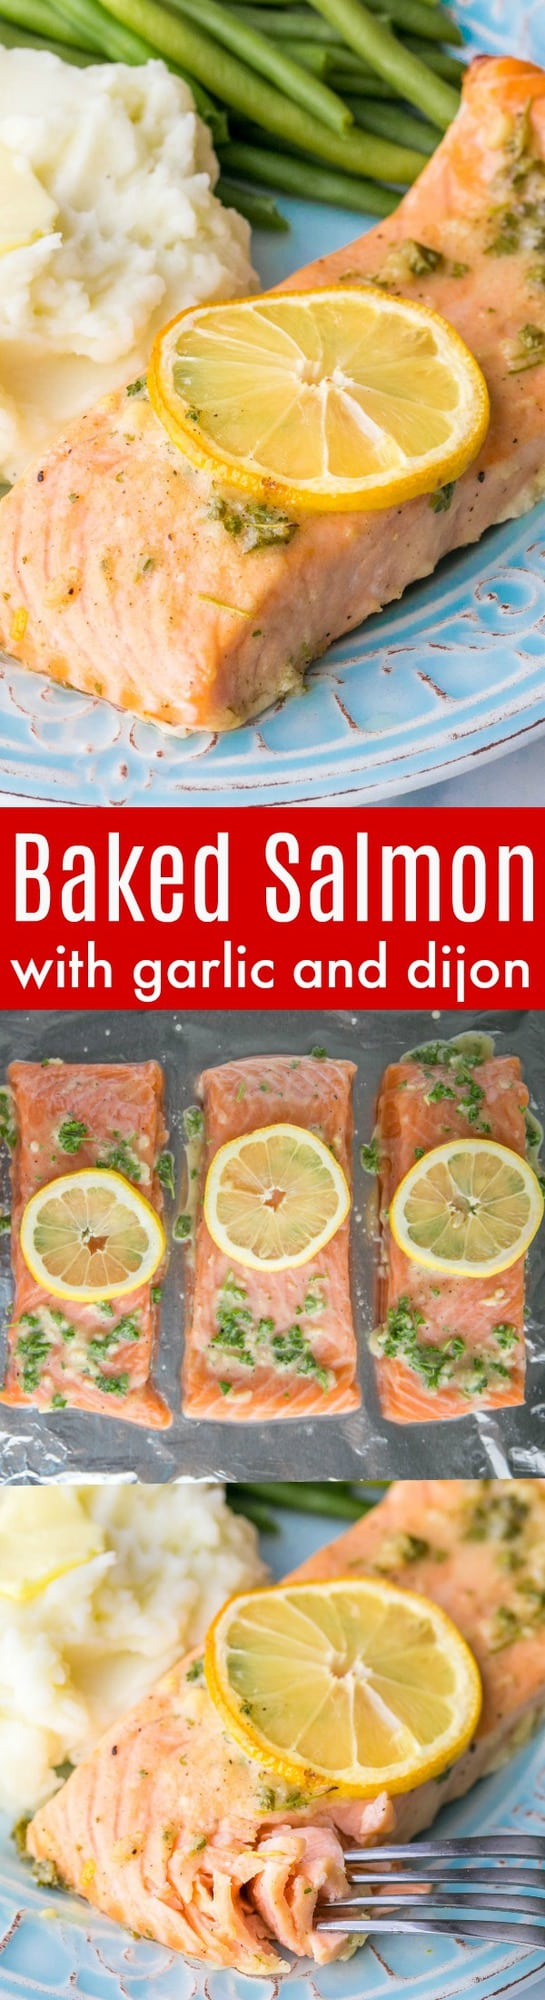 Our Favorite Baked Salmon Recipe - juicy, flaky and super delicious. A 5-Star recipe for baked salmon.